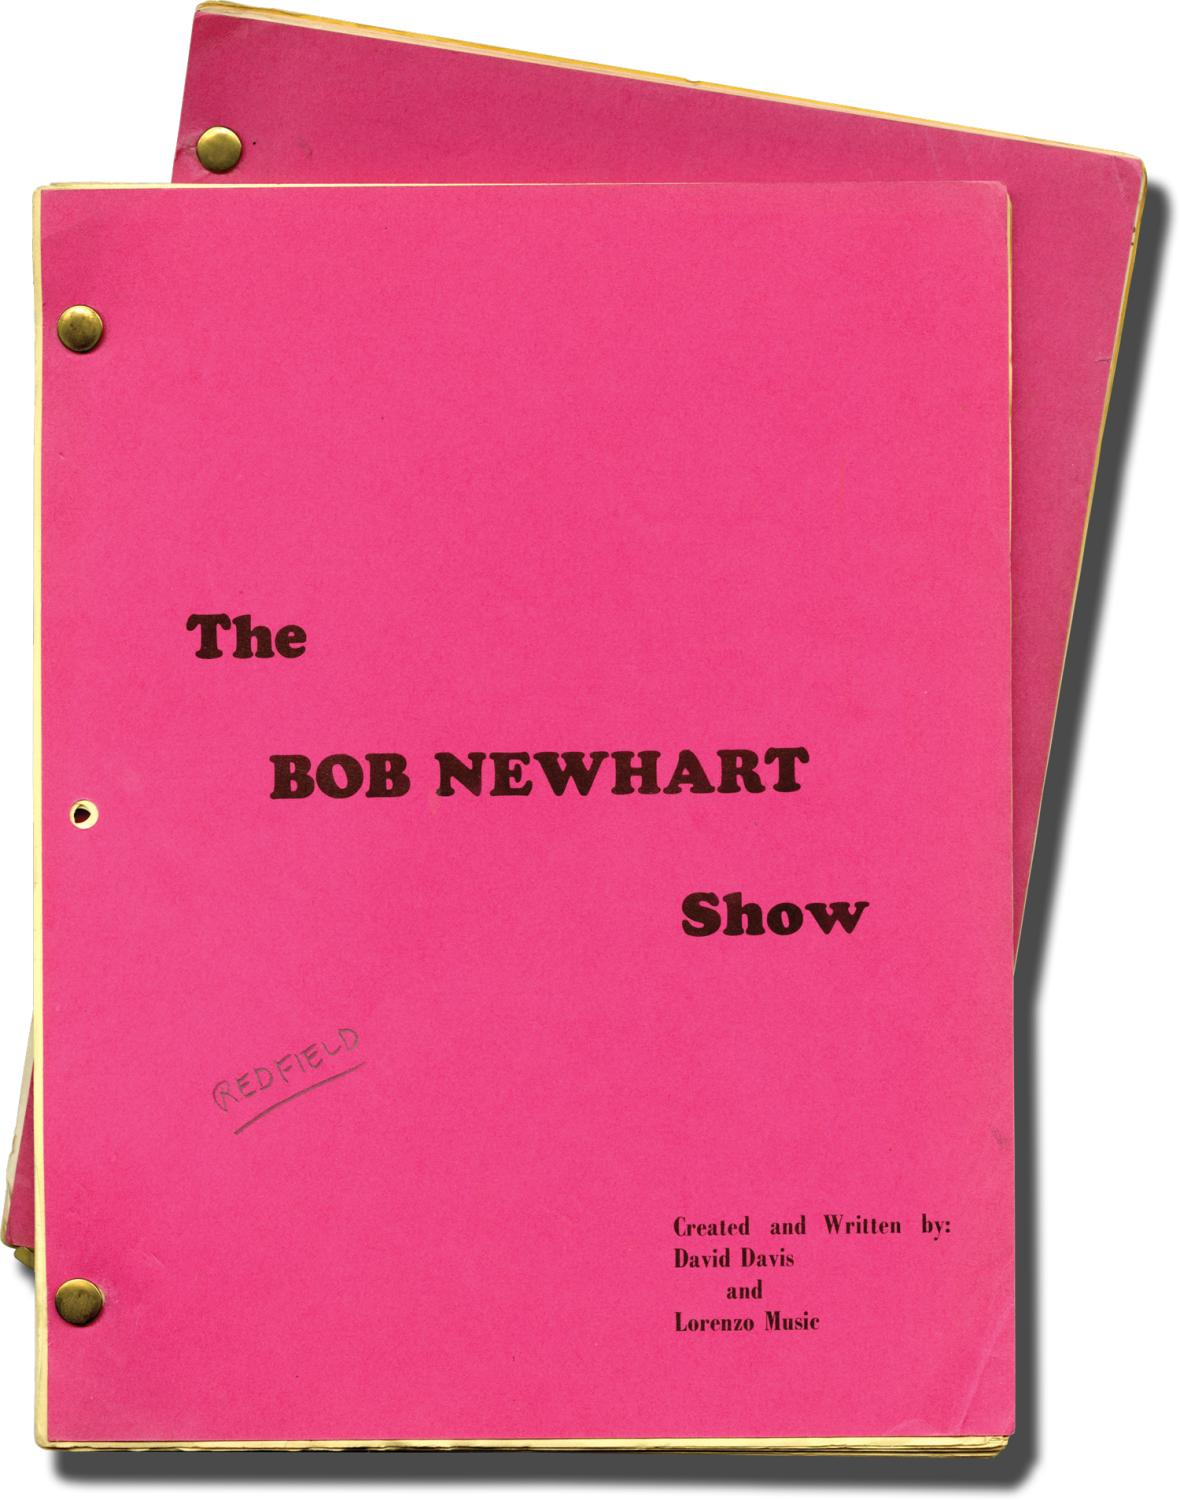 The Bob Newhart Show: P-I-L-O-T [Pilot] (Two original screenplays for the 1972 television episode, actor William Redfield's copies) Sandrich, Jay (di